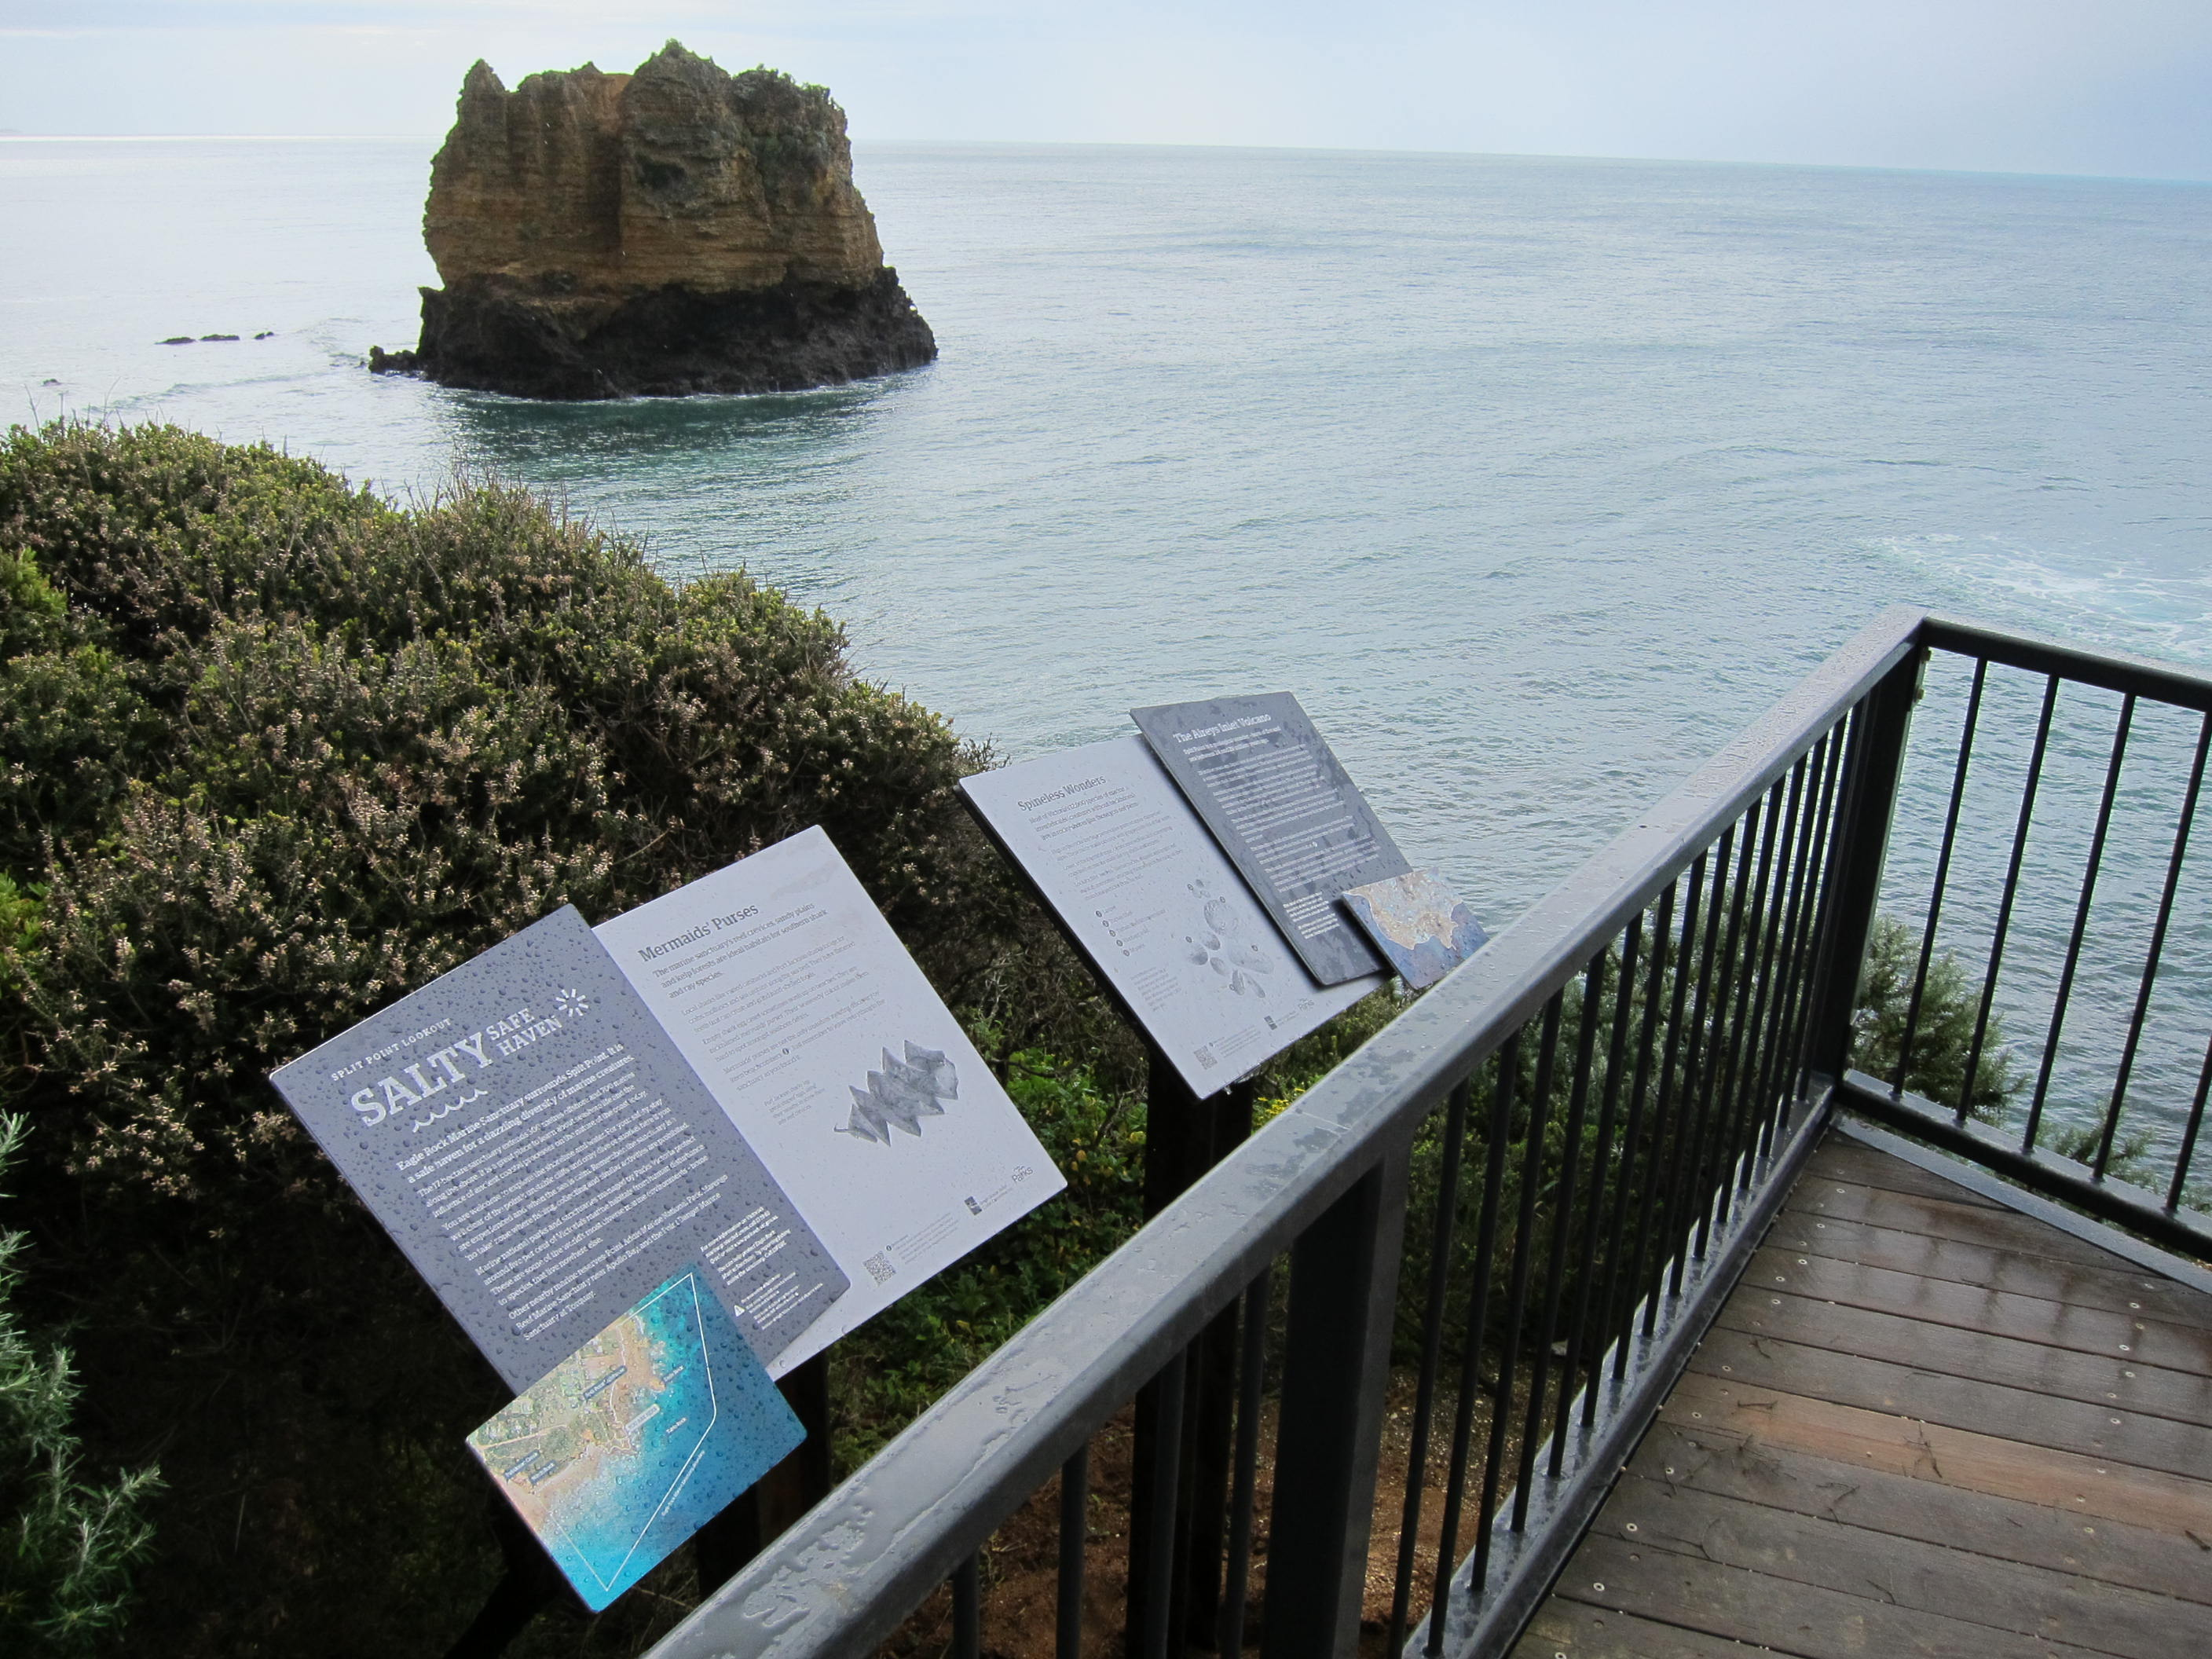 Interpretive signs installed by GORCC at Split Point Lookout.